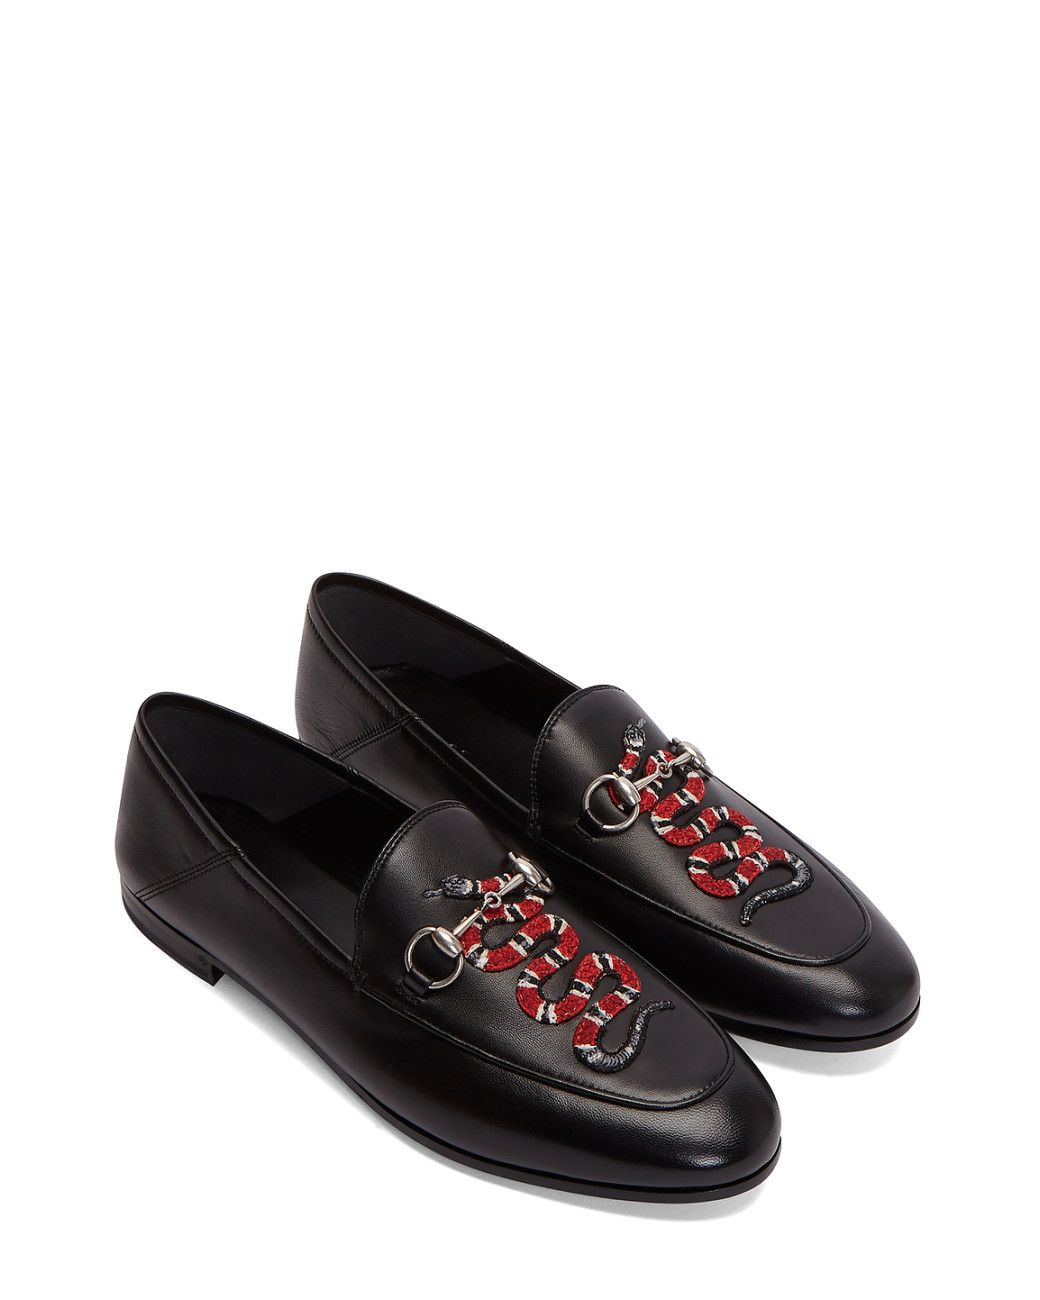 456289f4b Buy Gucci Gray Women's Snake Embroidered Horsebit Loafers In Black. Similar  products also available. SALE now on!